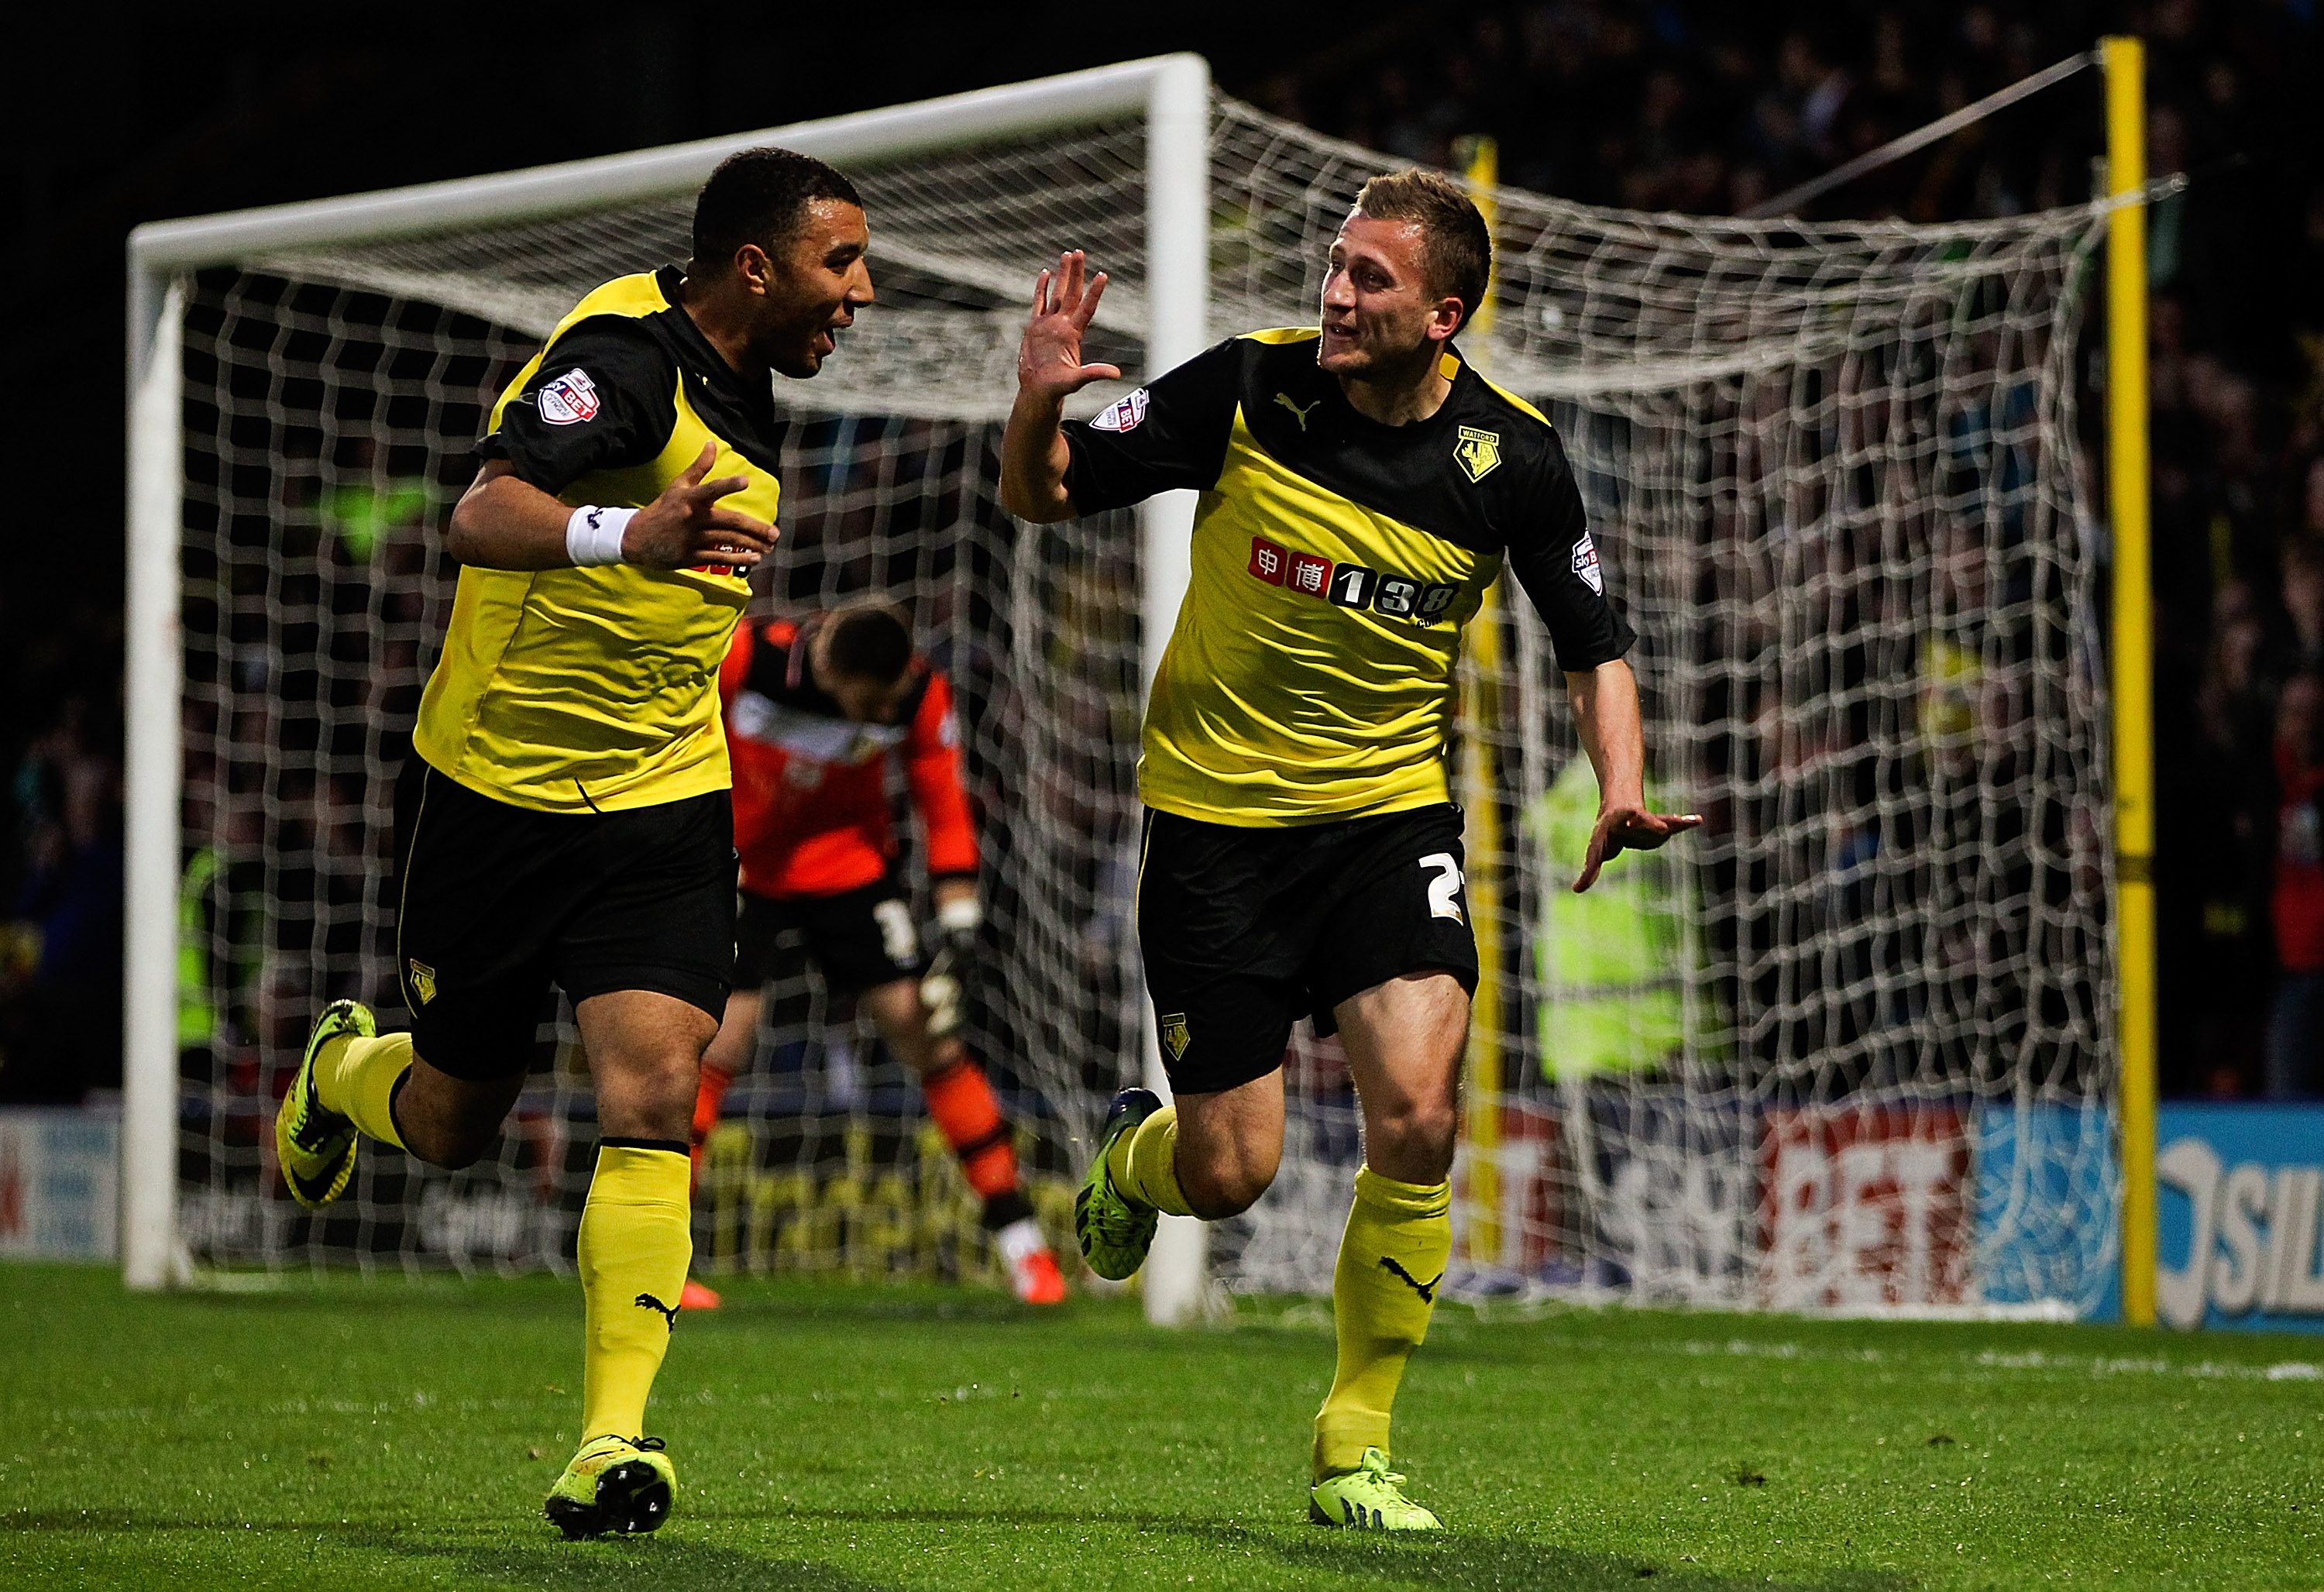 Will Watford celebrate and leave Leeds hanging their heads? Not if Steve Evans can help it.